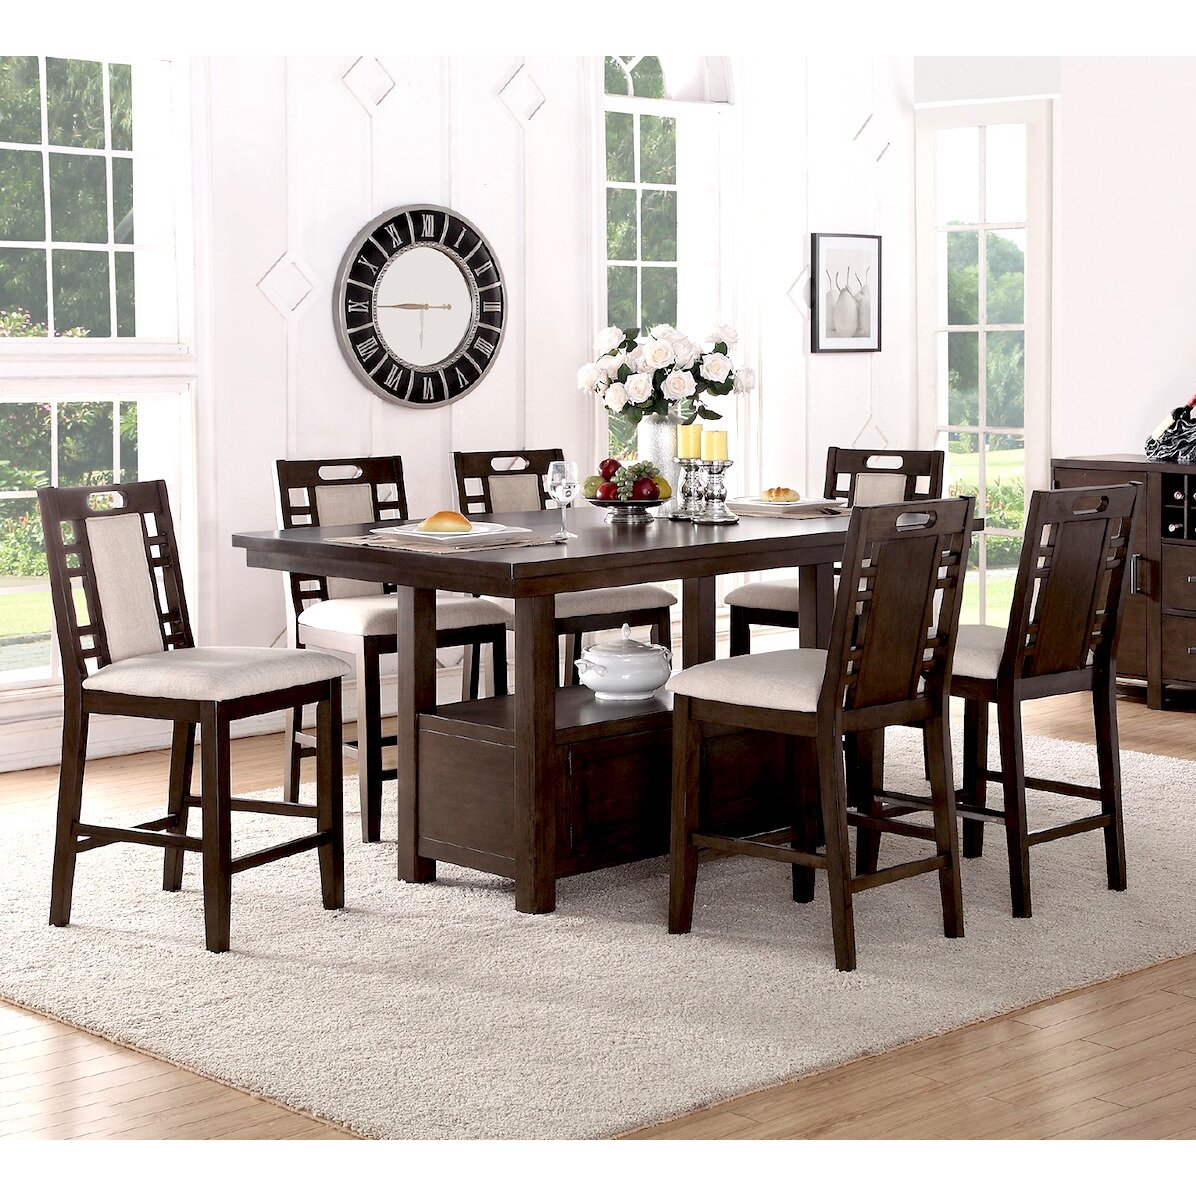 dining furniture 7 piece kitchen dining room sets winston porter